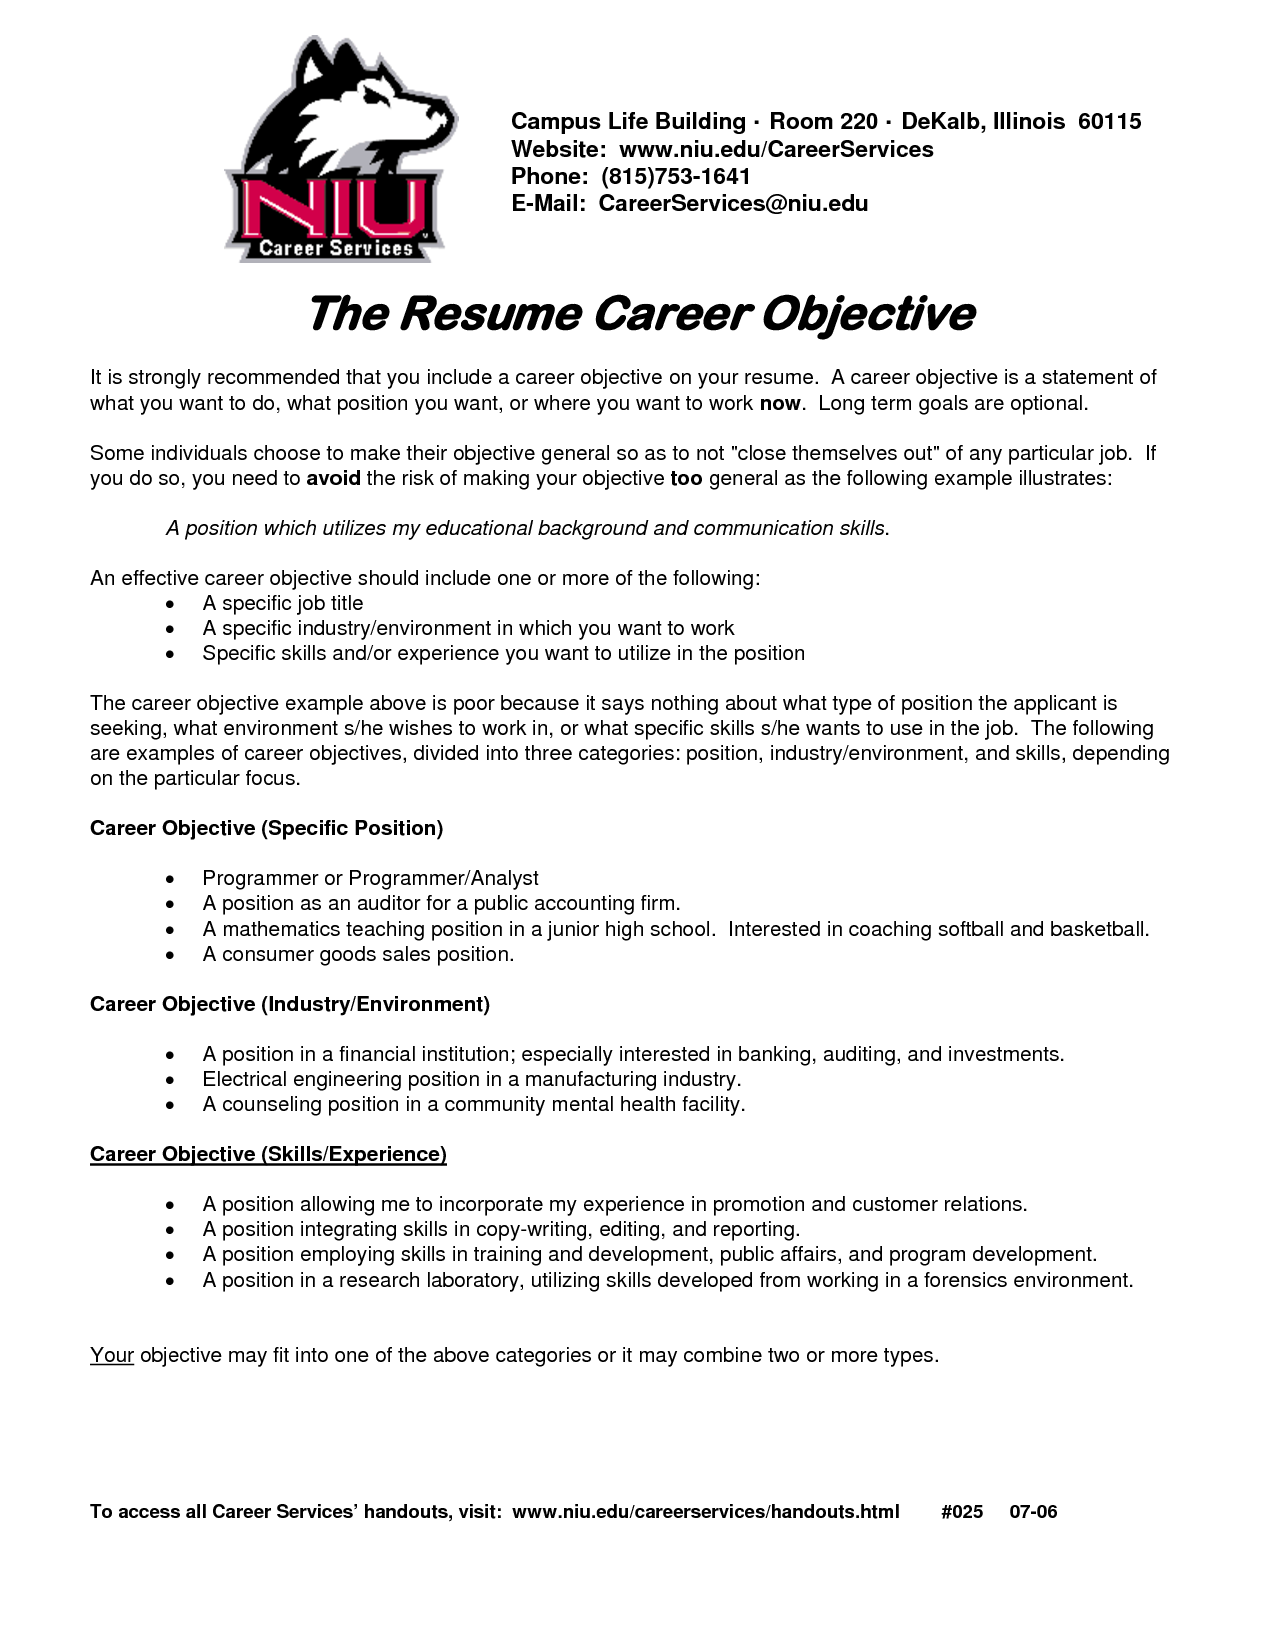 12 general career objective resume